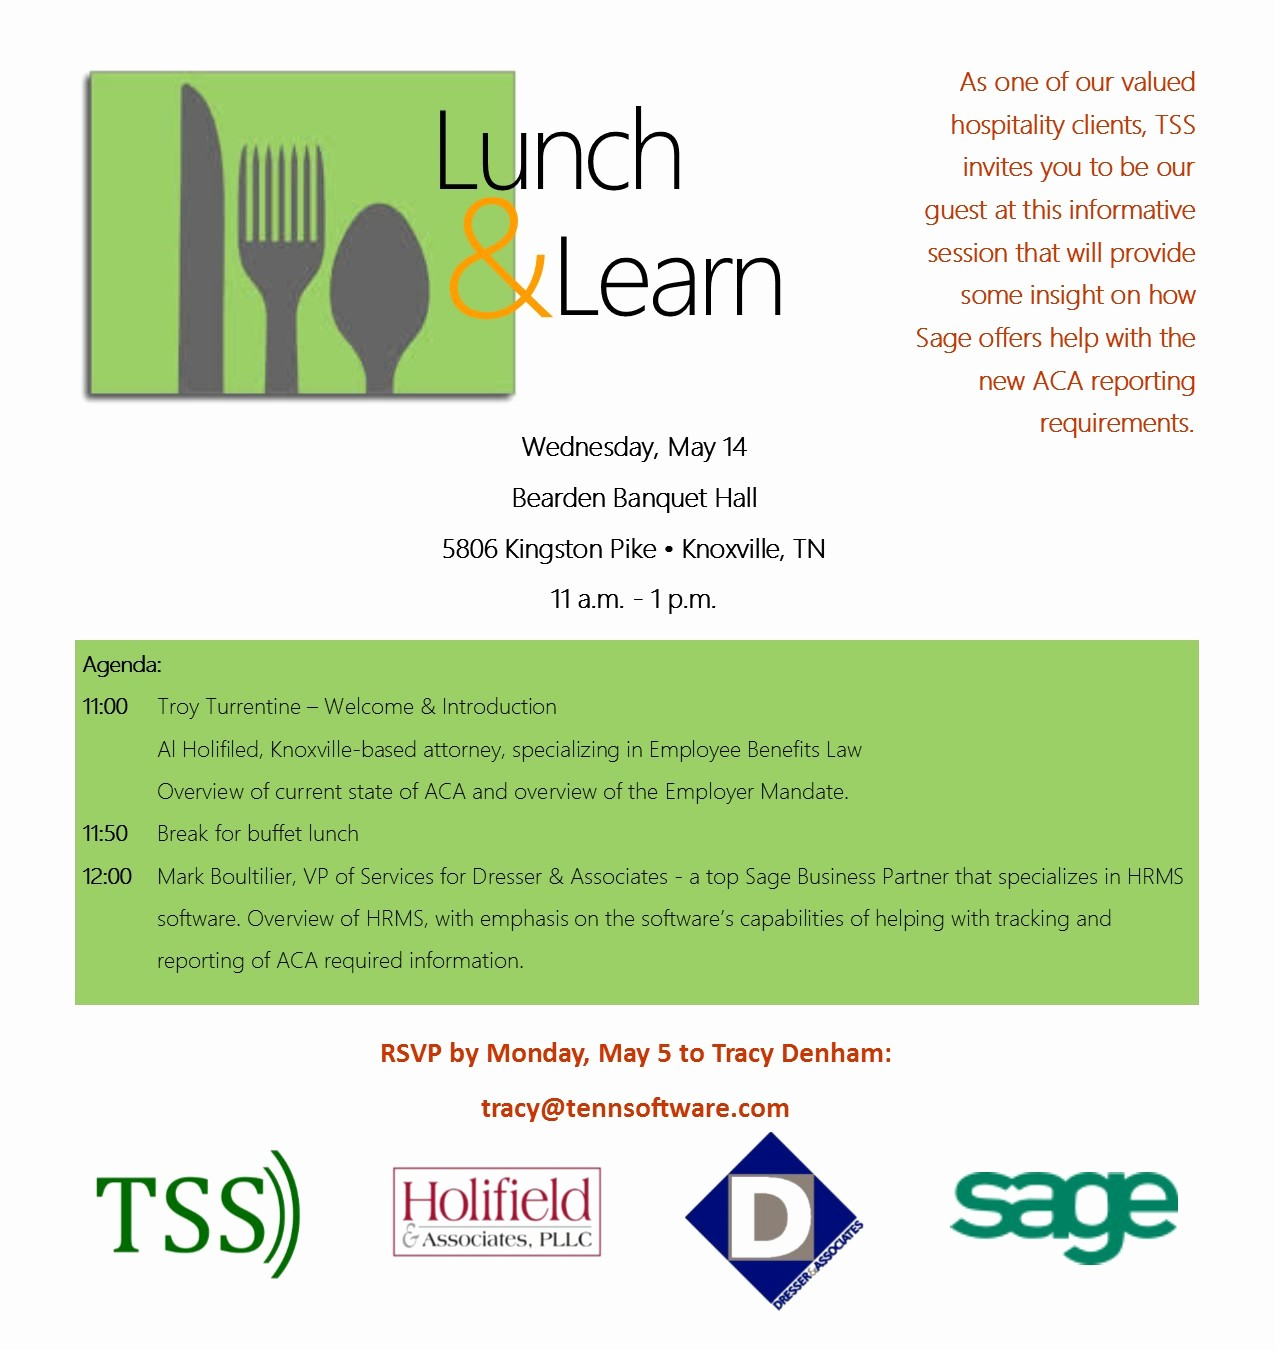 Lunch and Learn Invitation Template Fresh Hospitality Industry Lunch & Learn Aca Reporting – Tss